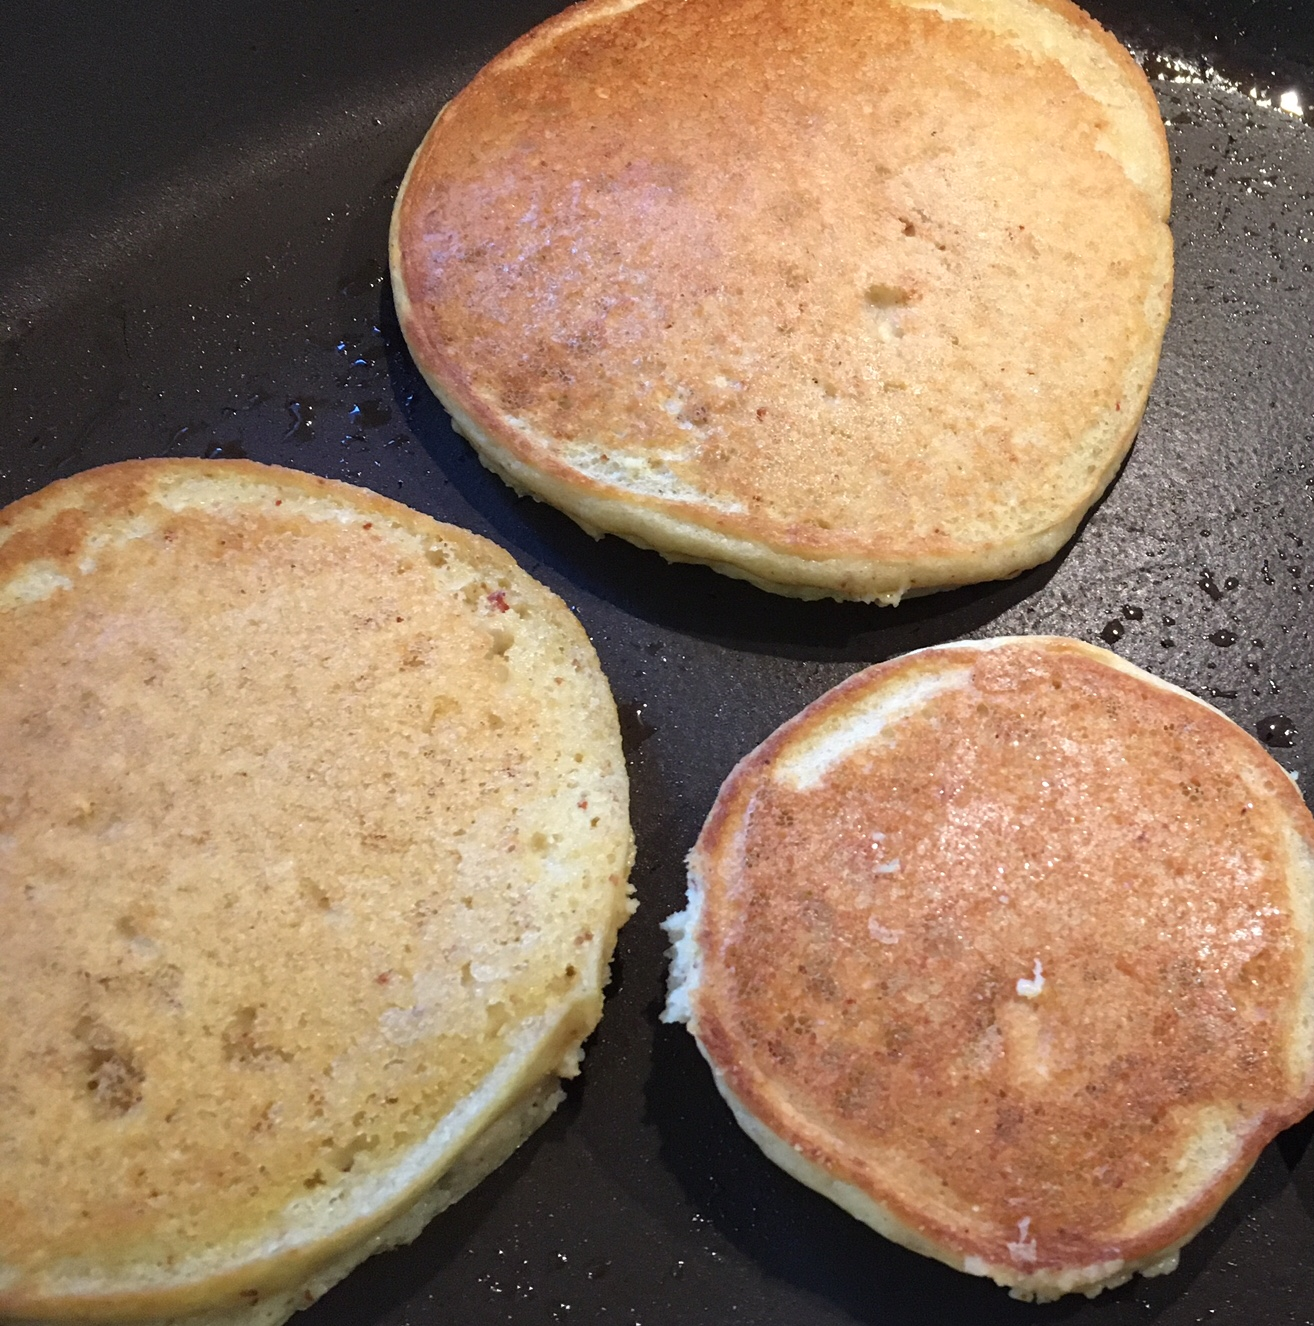 My little guy (and husband...ok, and me too...) have been on a pancake jag lately. This recipe yields a great tasting, beautifully textured pancake. The recipe can be halfed if you only want a couple pancakes, but why bother! Just freeze the excess pancakes if you have too many. Enjoy!